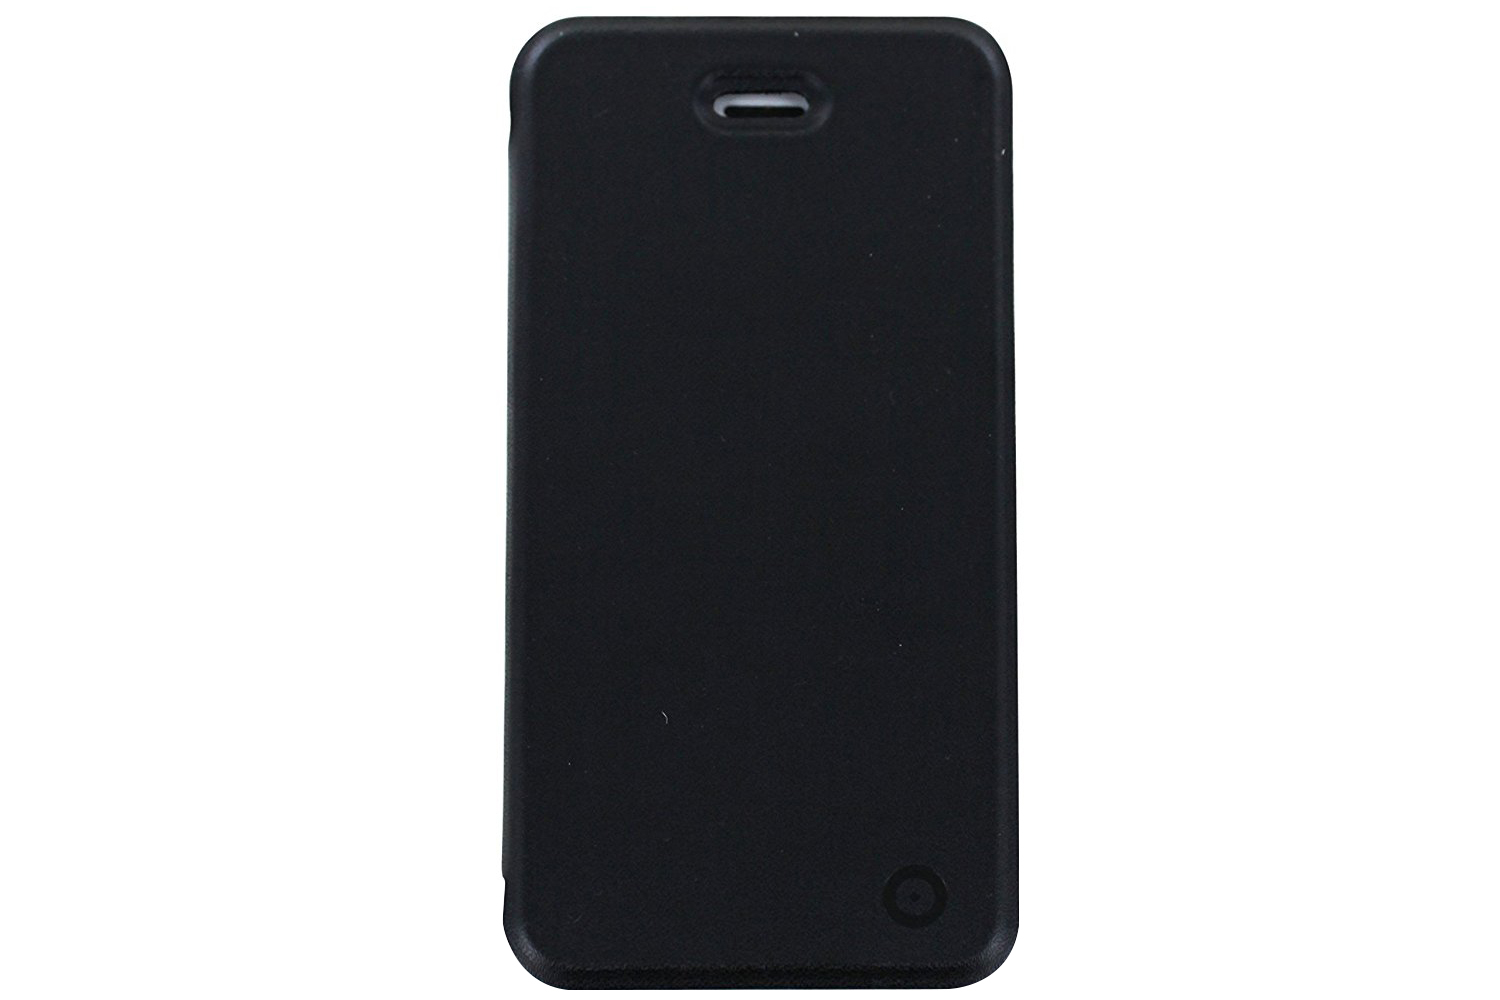 Mint Premium Iphone 5s 16gb Ireland Se Grey Muvit Folio Case Black